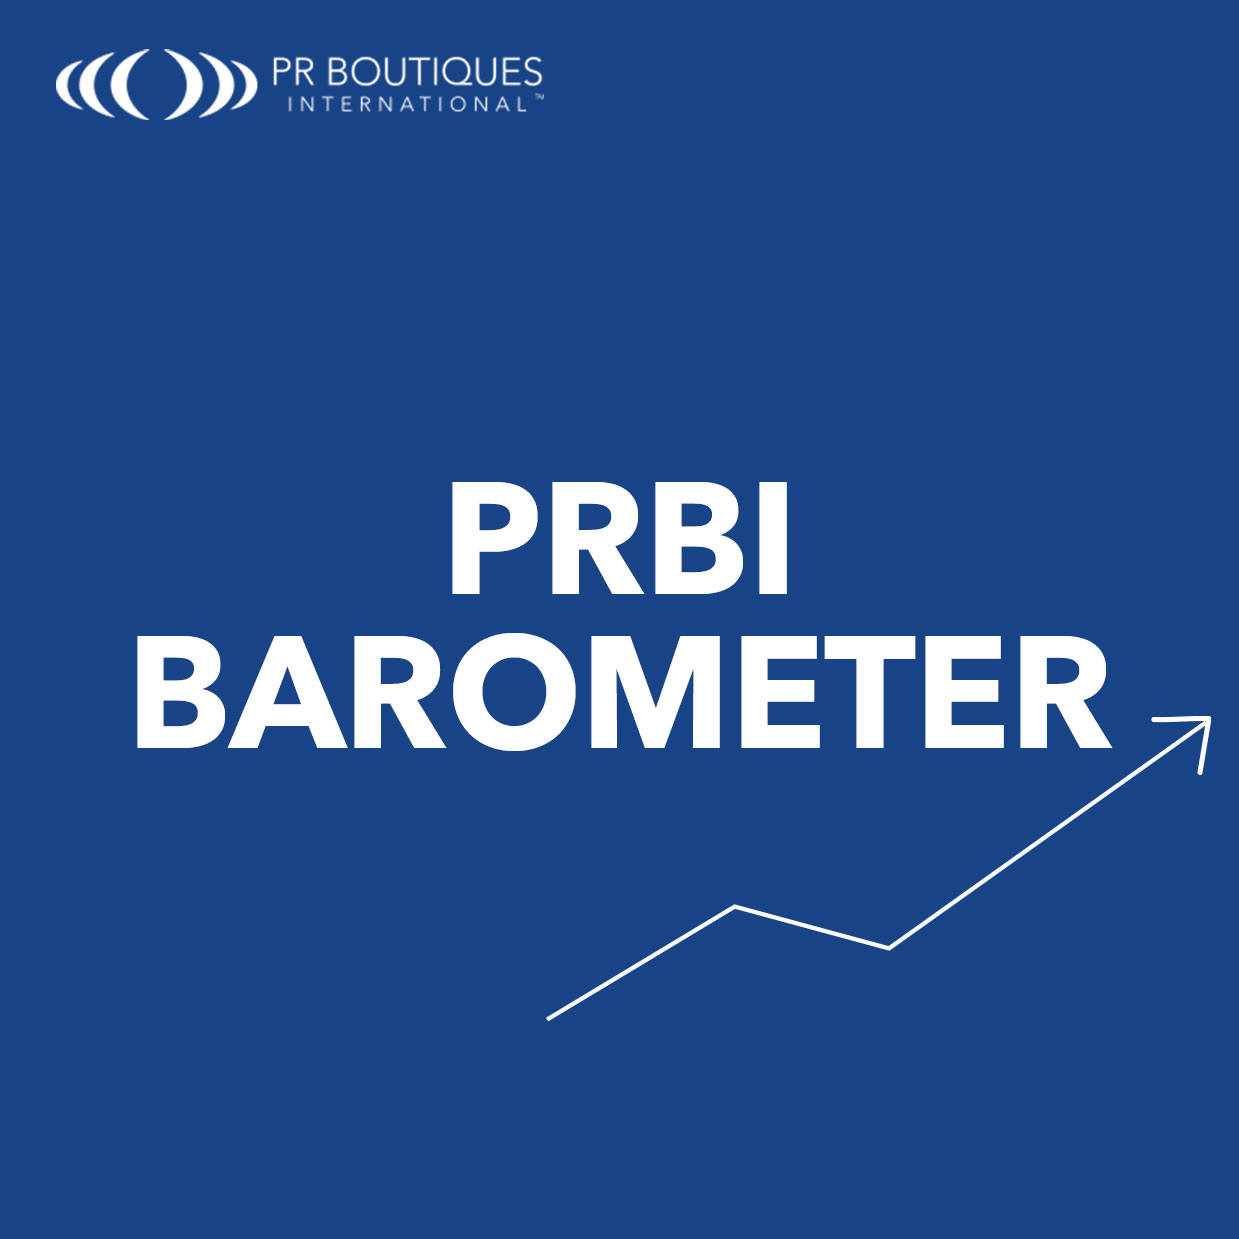 PRBI barometer: even more clients are expecting that agencies are able to show their services' ROI